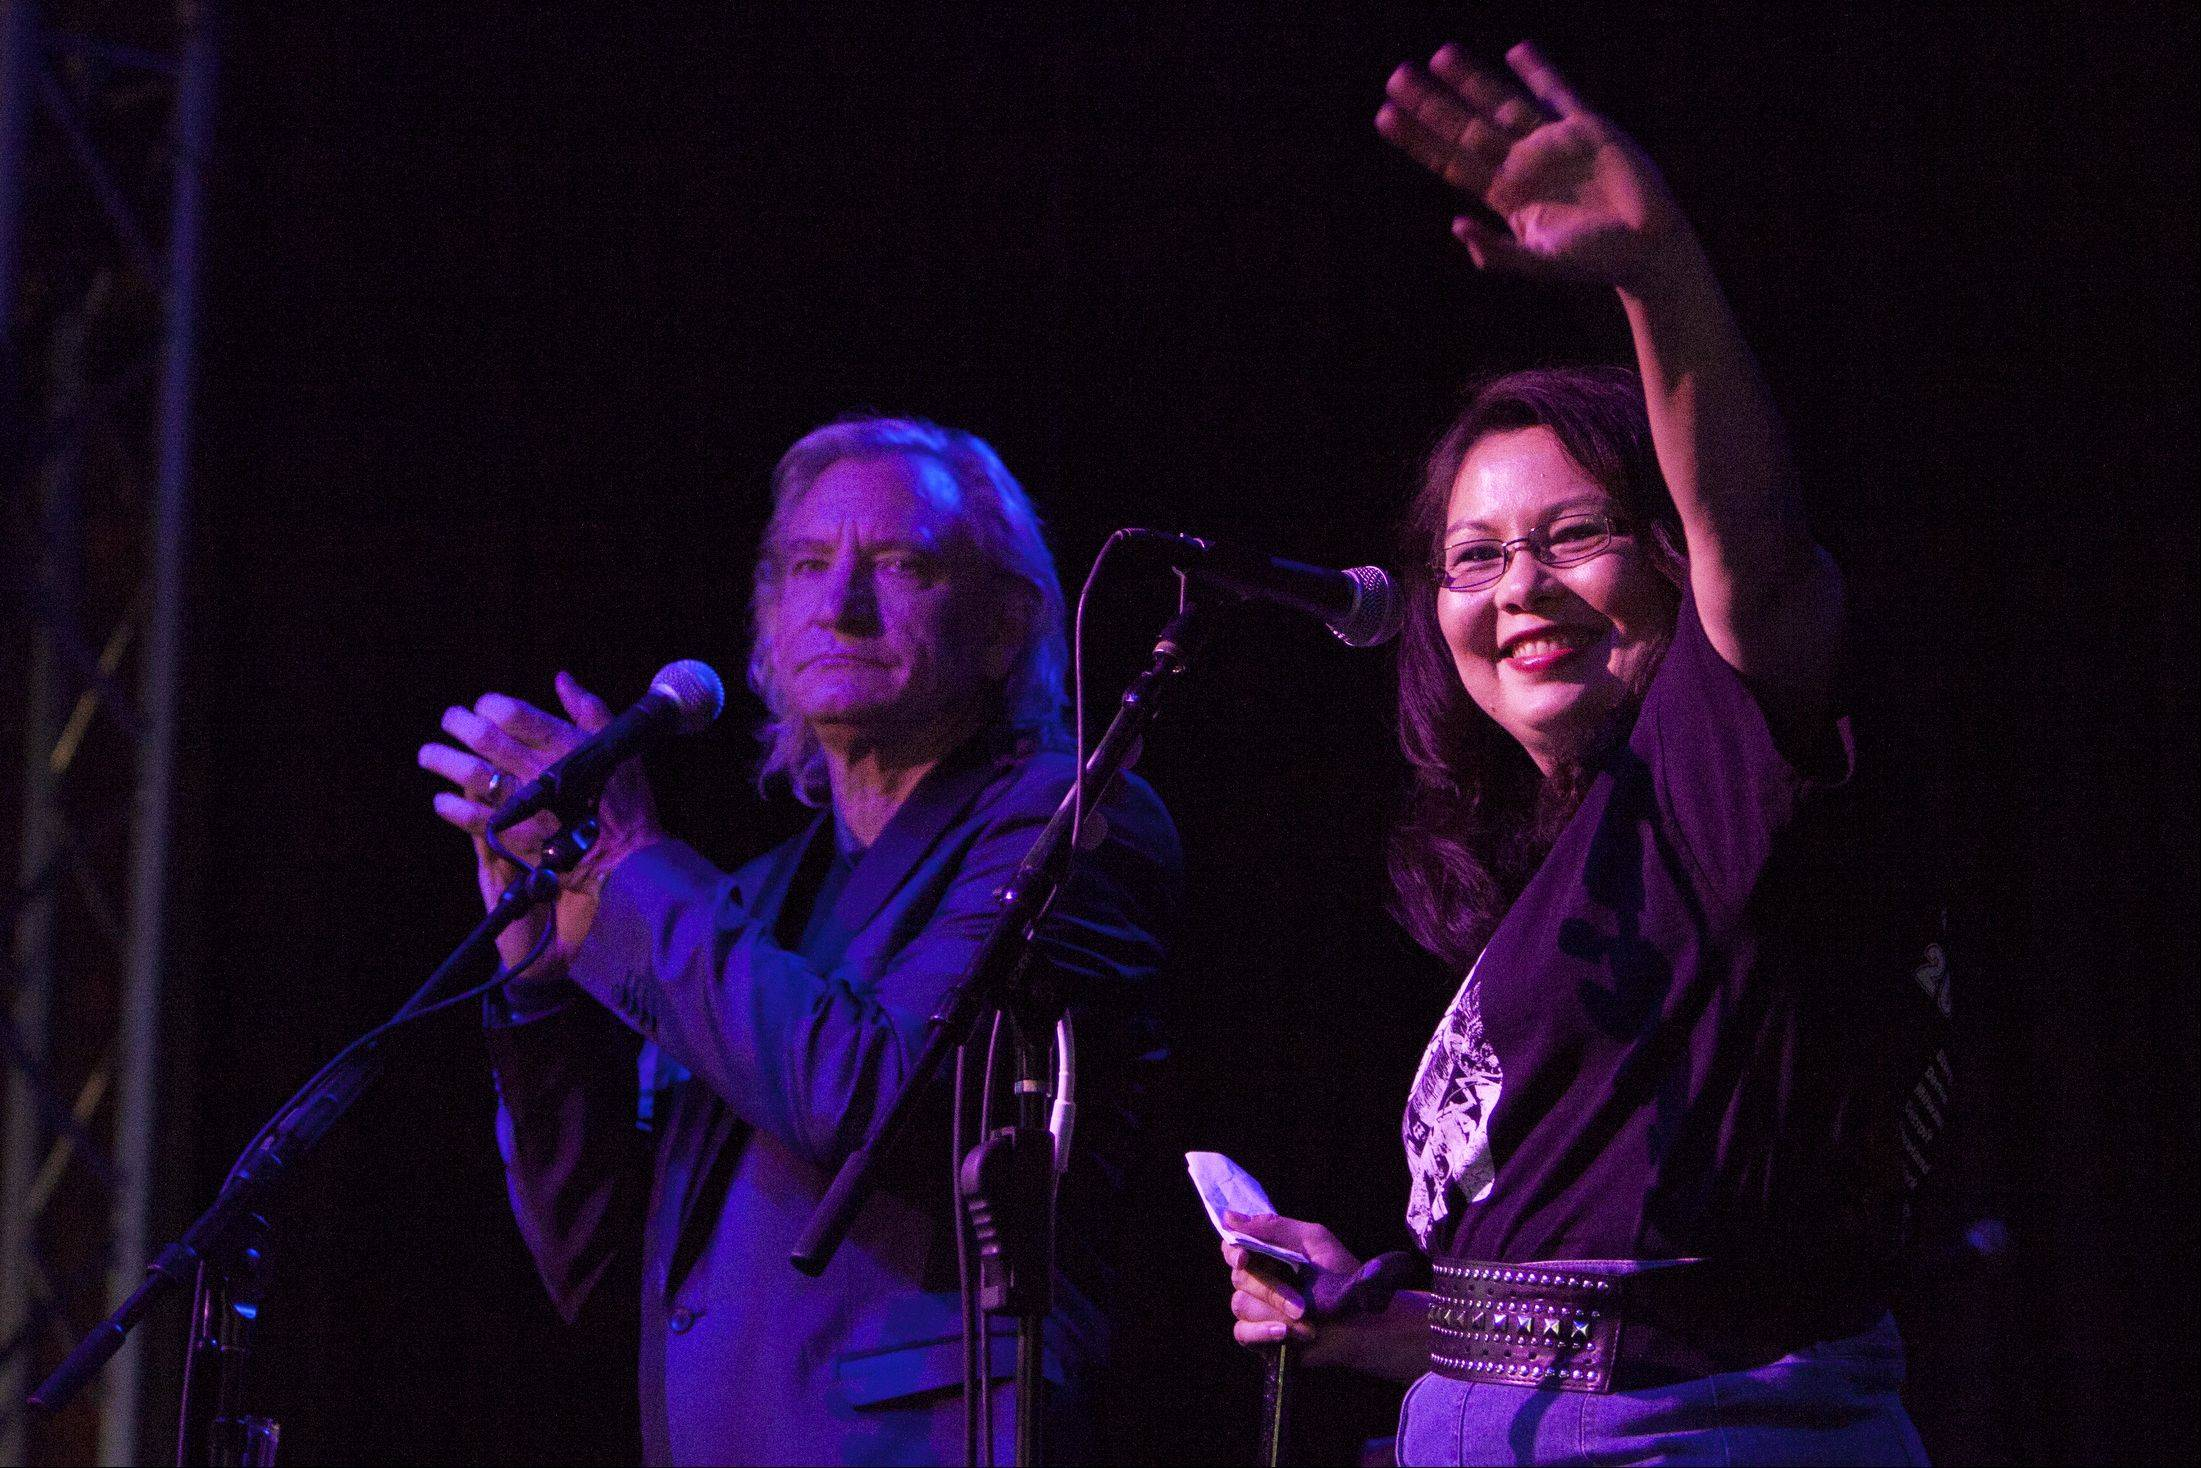 Joel Bissell/jbissell@dailyherald.comTammy Duckworth waves to her 500 volunteers/supporters before Joe Walsh took the stage with his guitar.